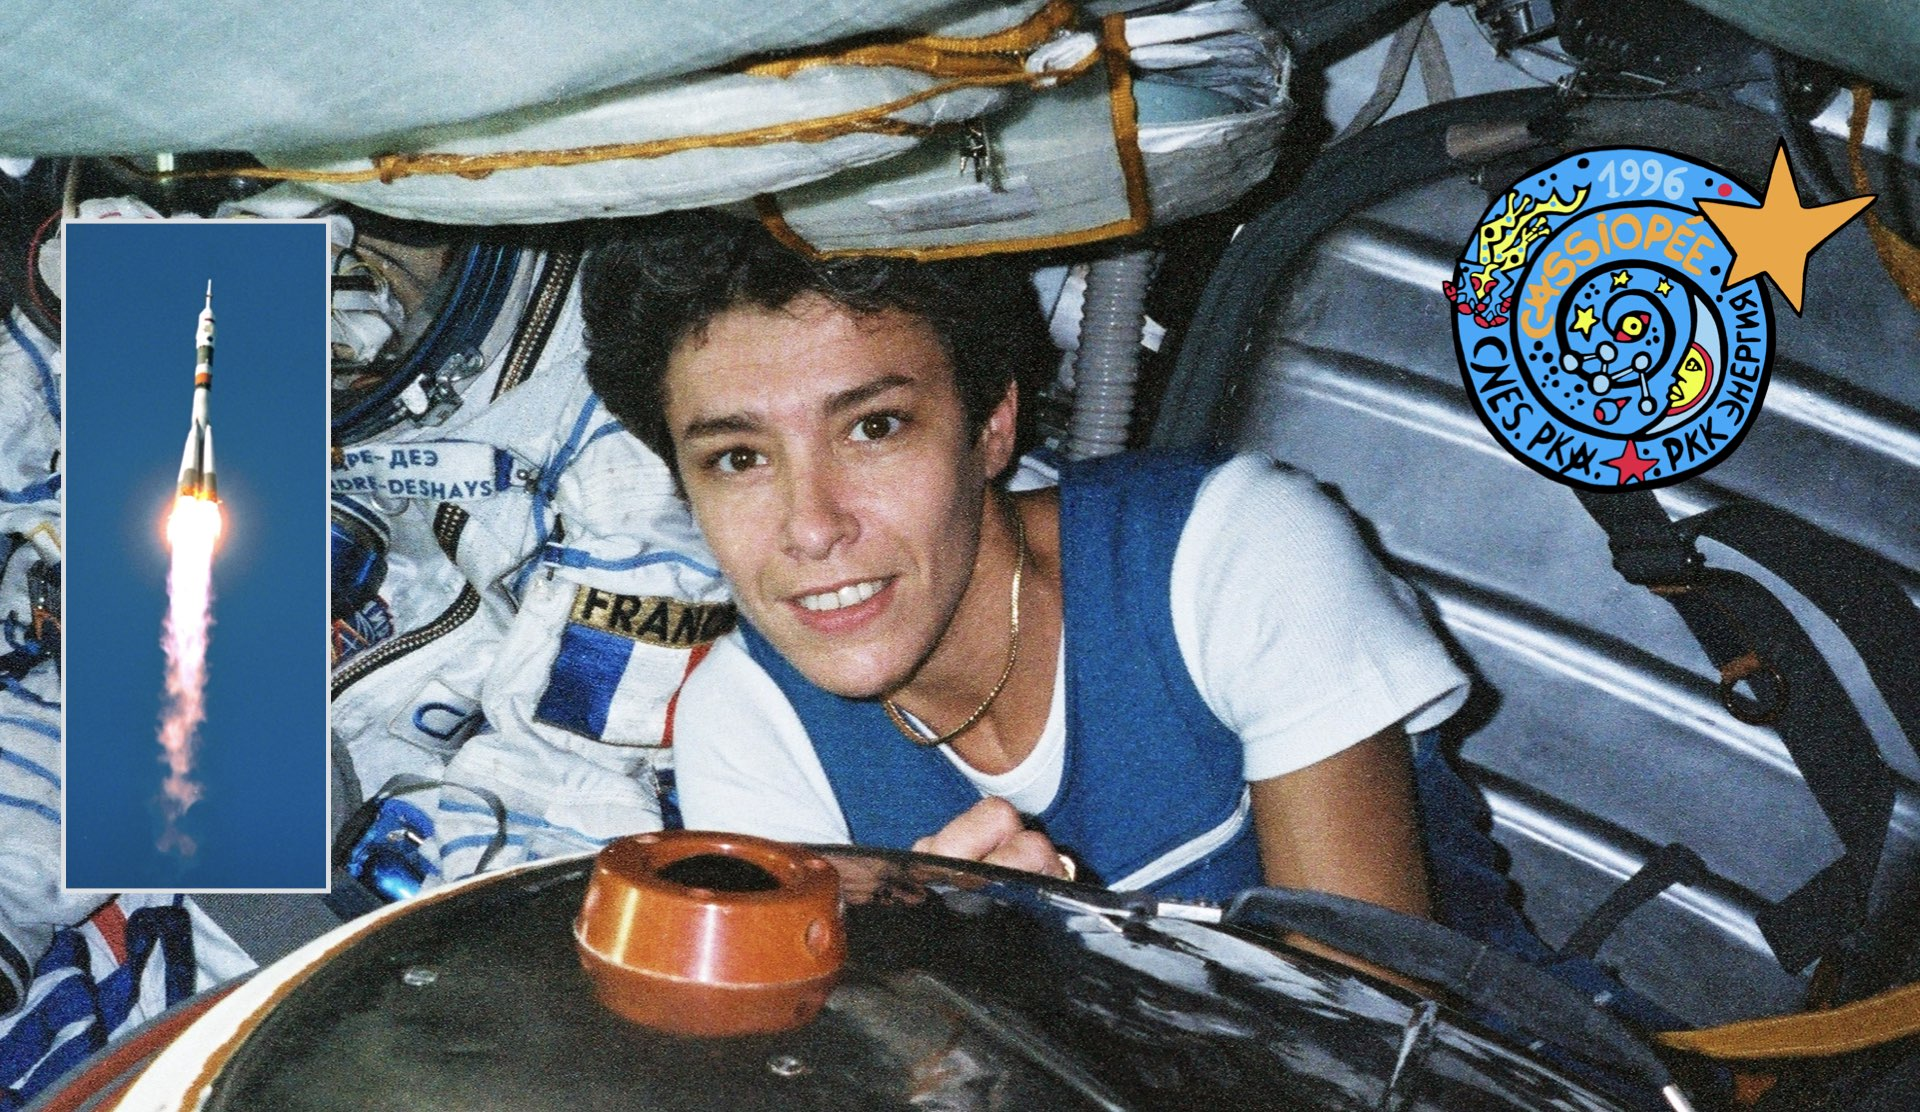 25 YEARS AGO: CLAUDIE HAIGNERÉ, FIRST FRENCH WOMAN IN SPACE